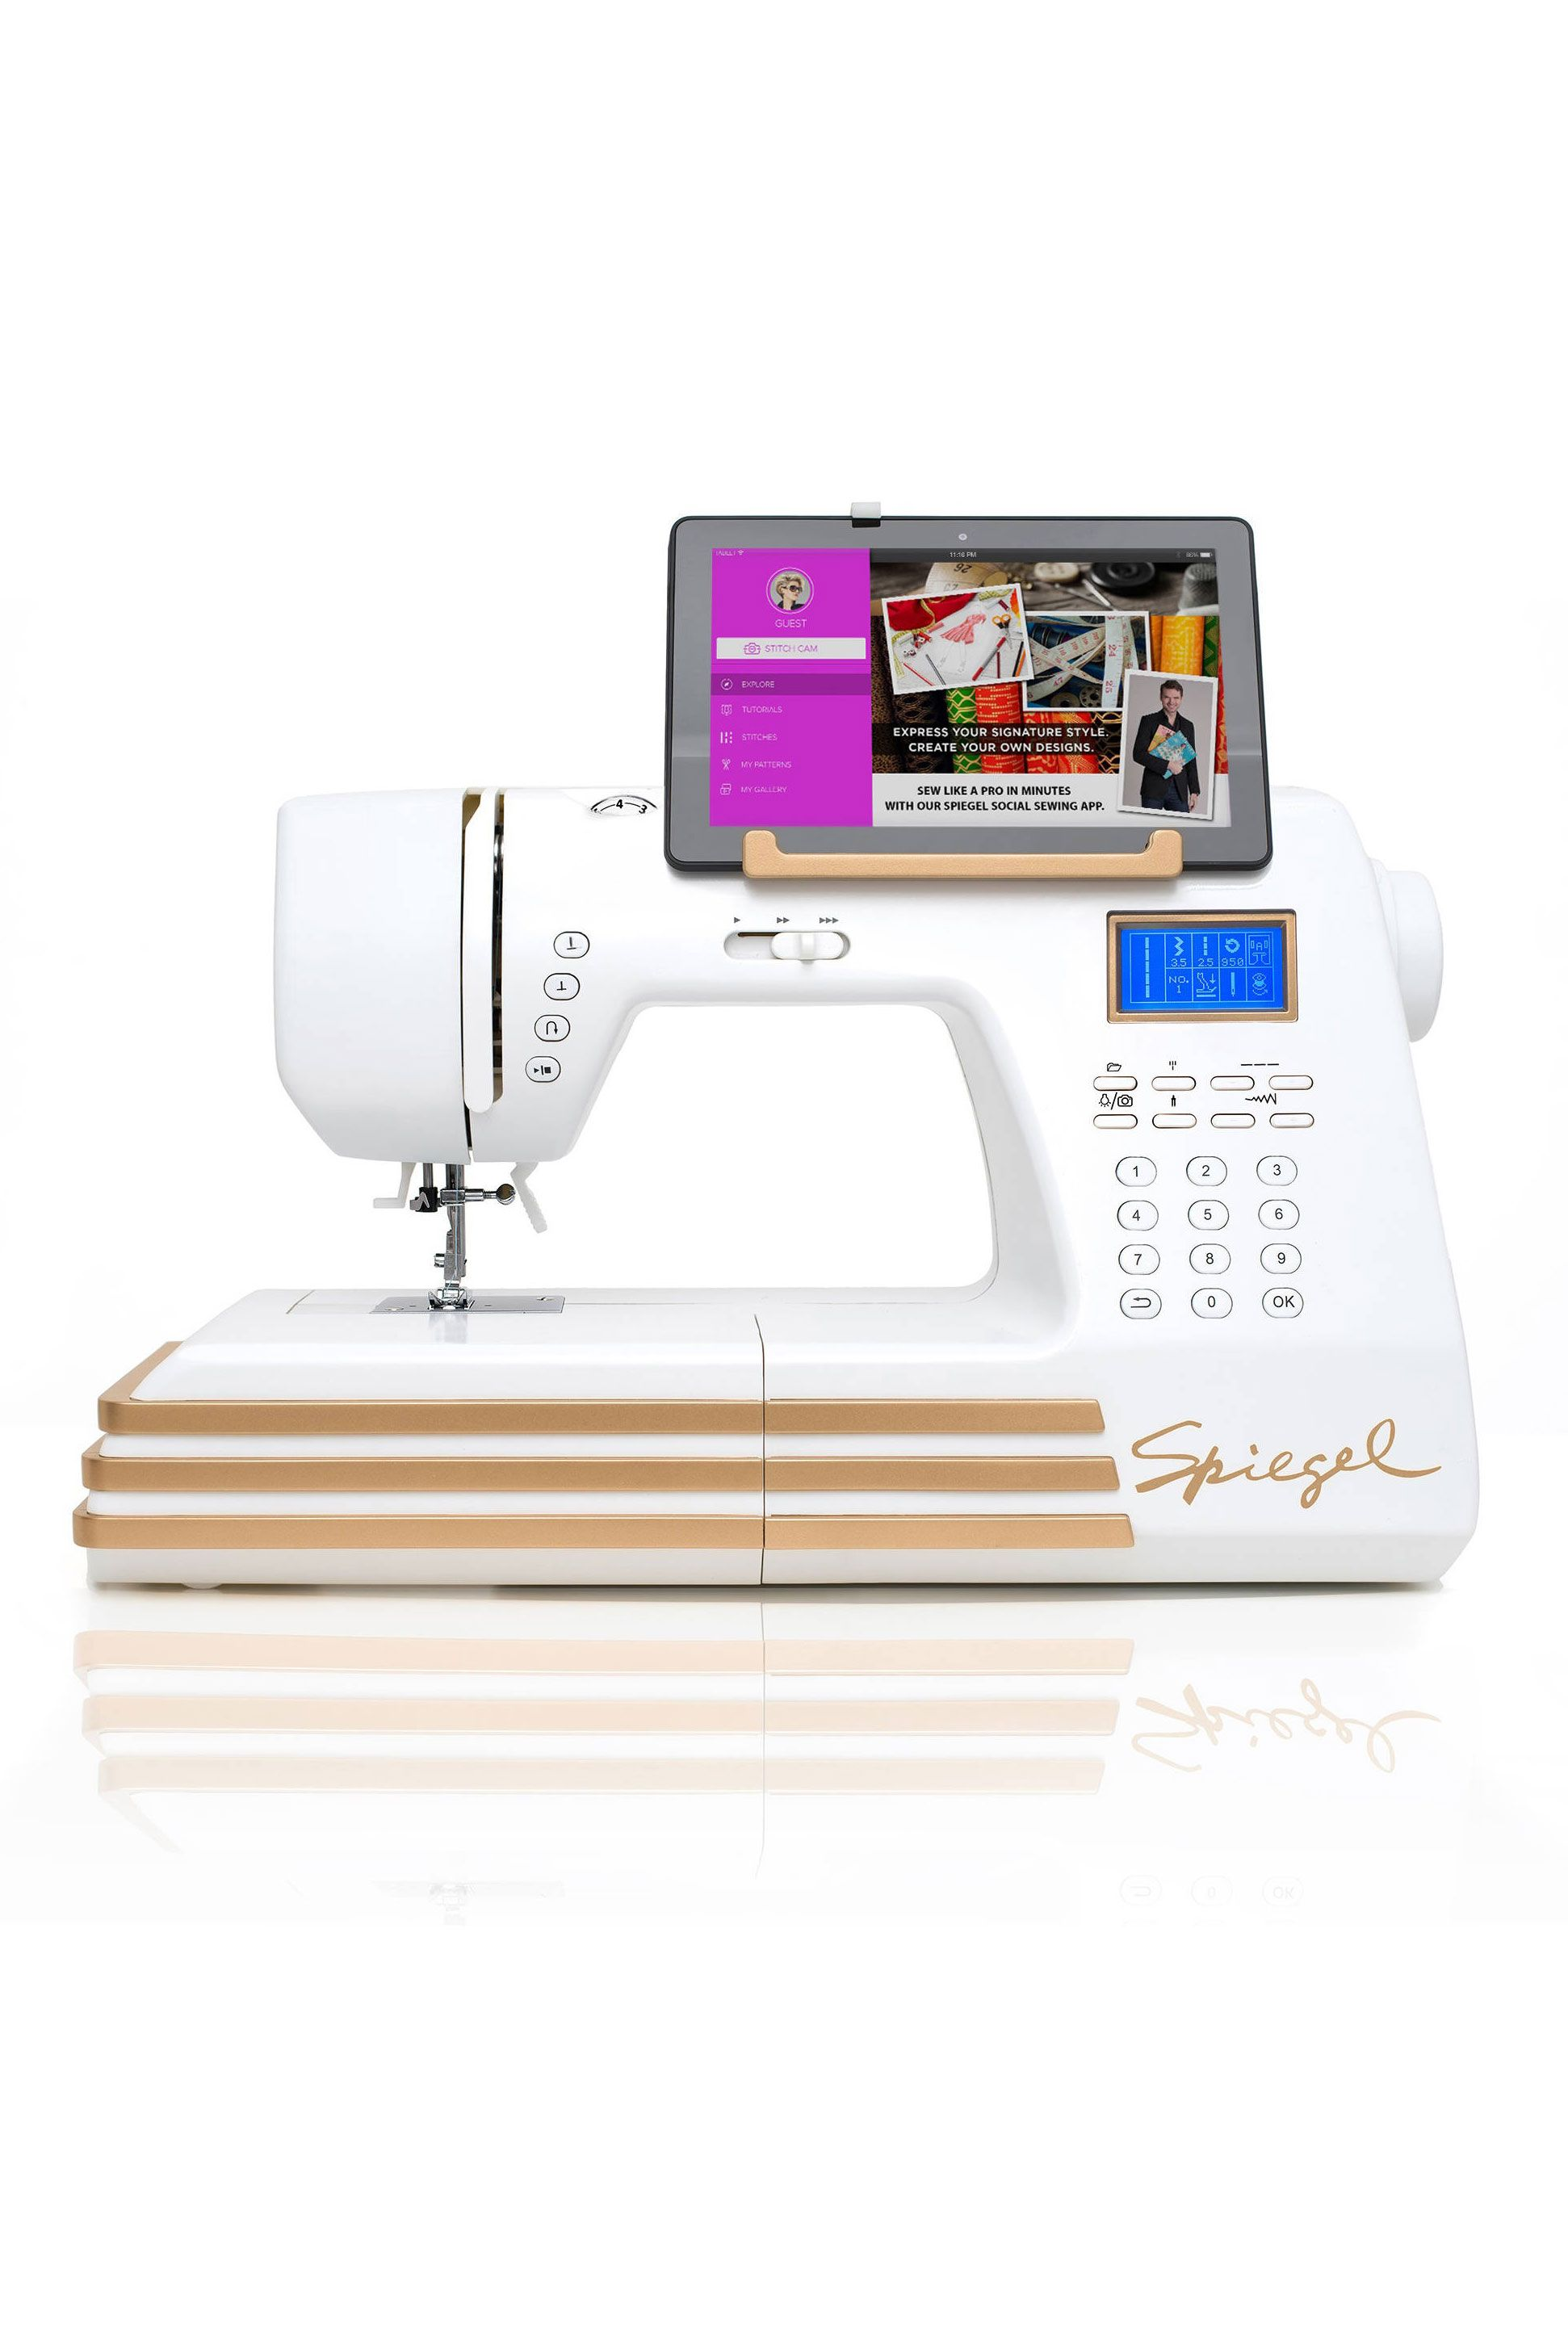 Best Sewing Machines Machine Reviews Threadingdiagrams Threadingpages Kenmoresewingmachinethreading